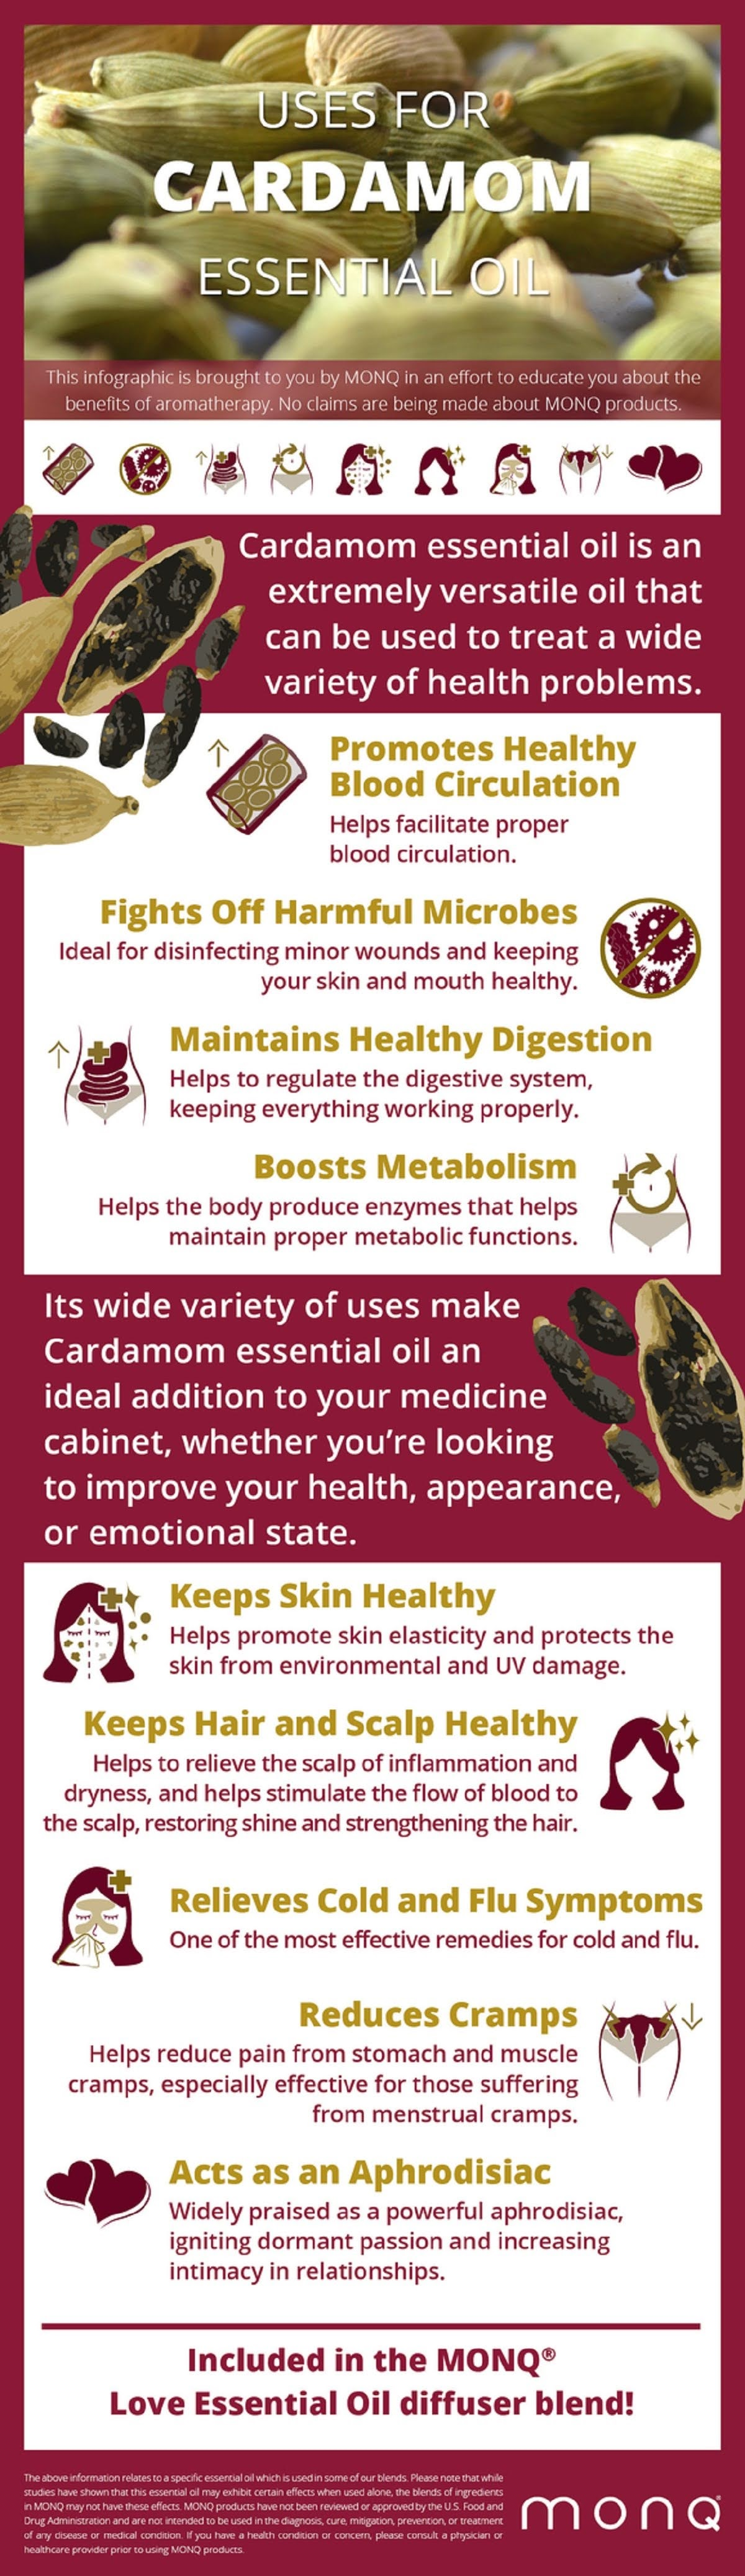 cardamom-essential-oil-a-versatile-ancient-remedy-infographic